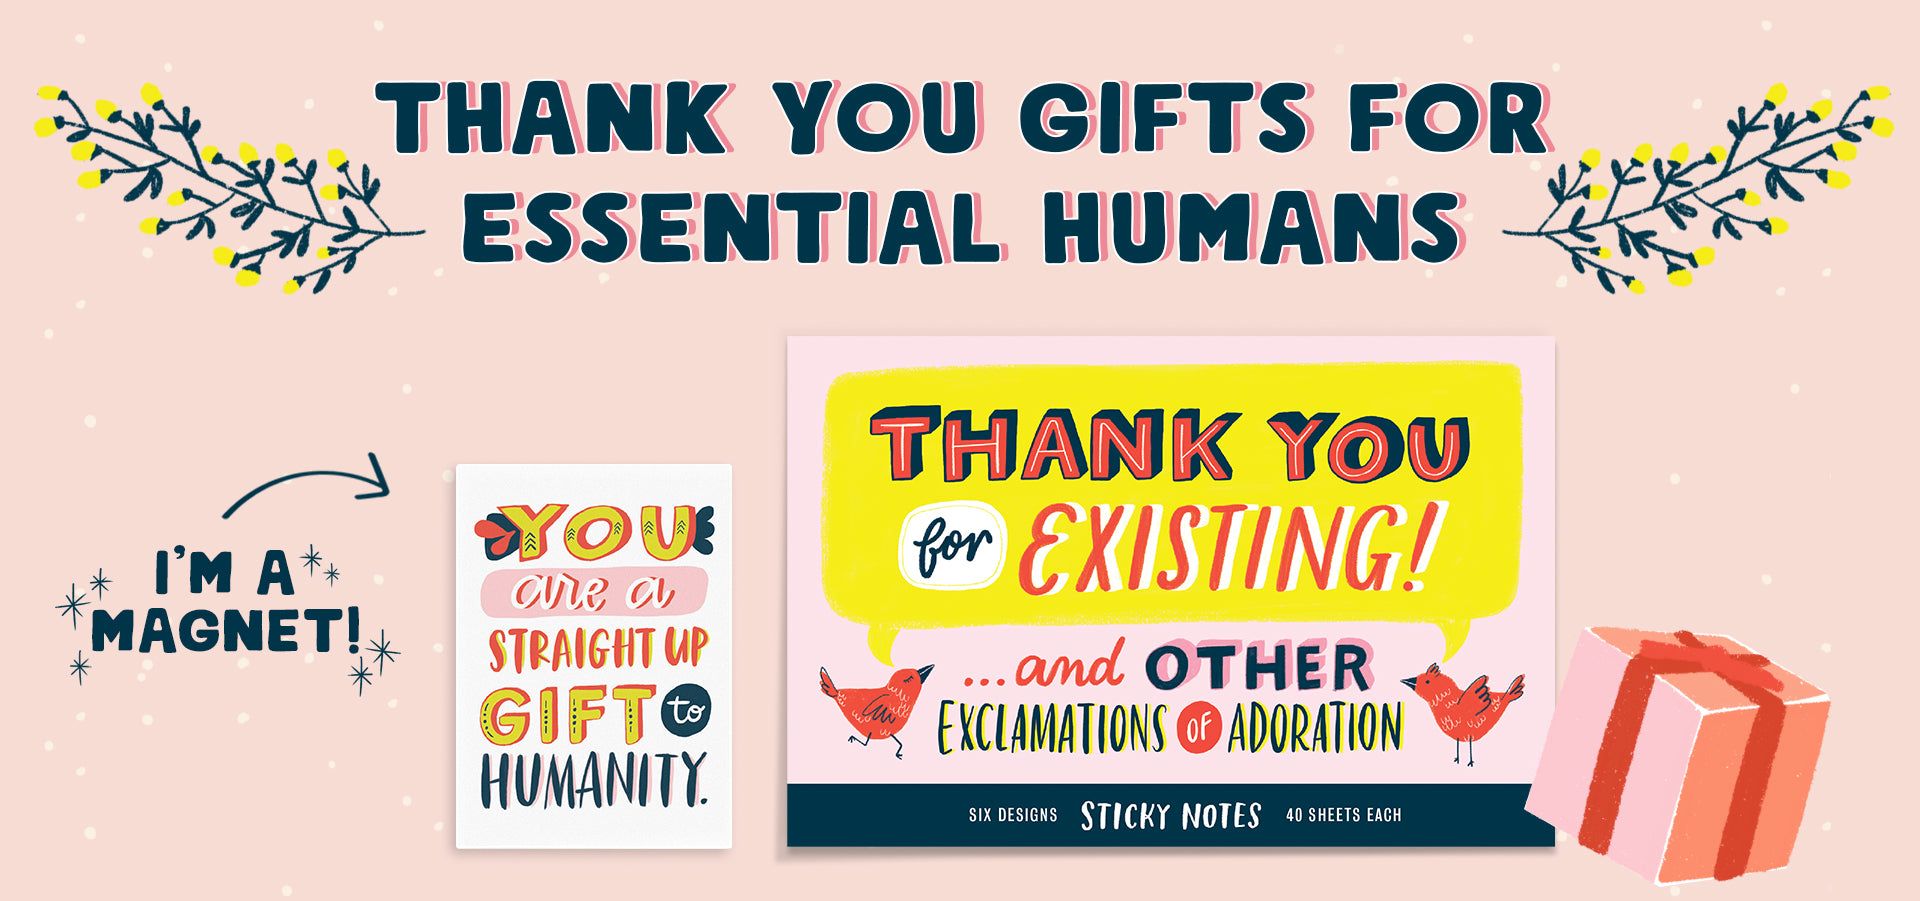 Thank You Gifts for Essential Humans from Emily McDowell & Friends